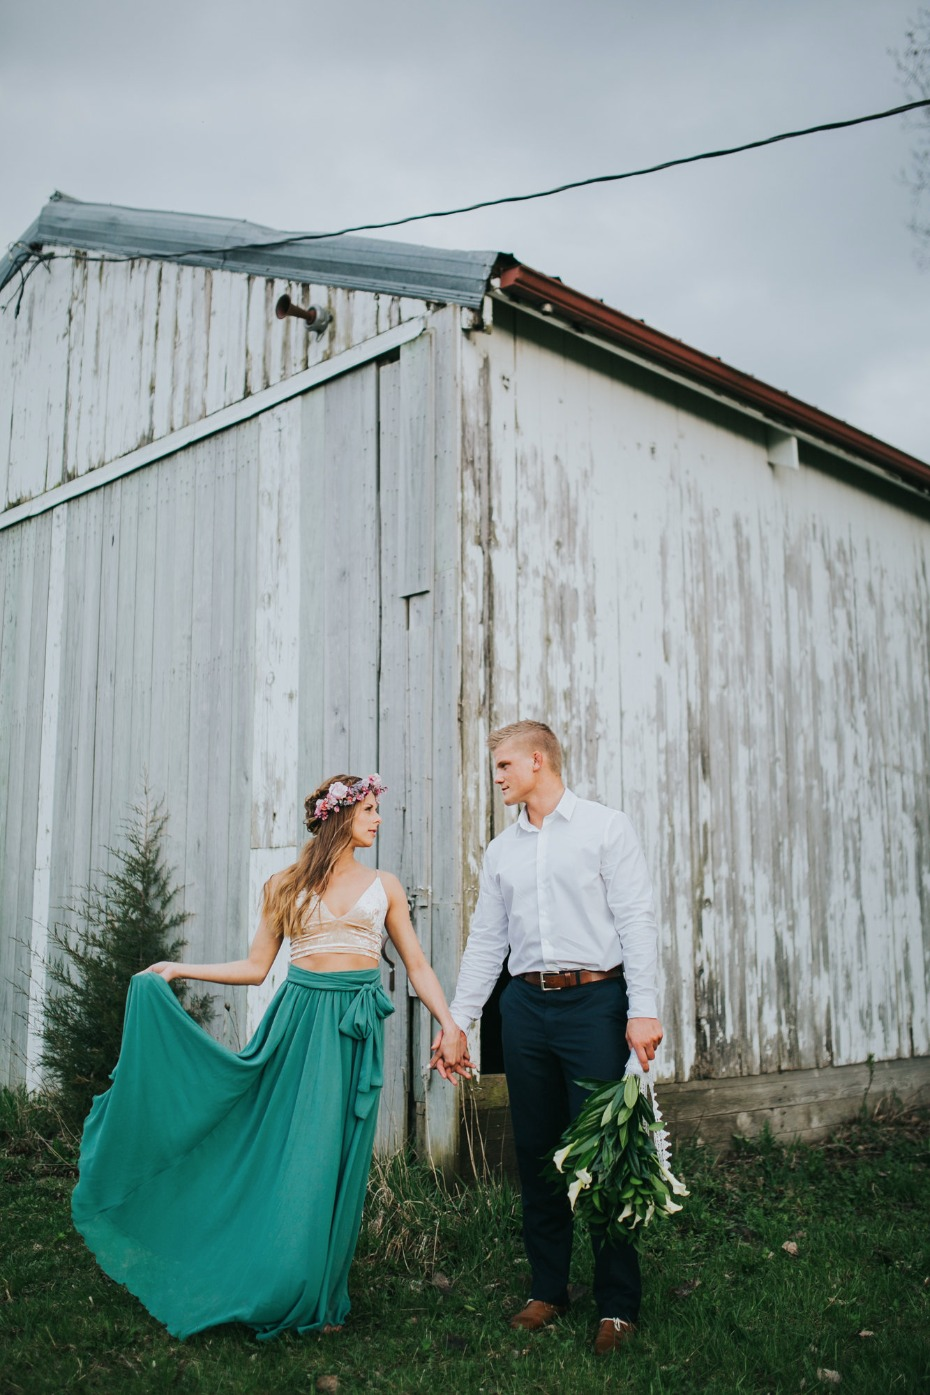 Styled shoot turned surprise engagement